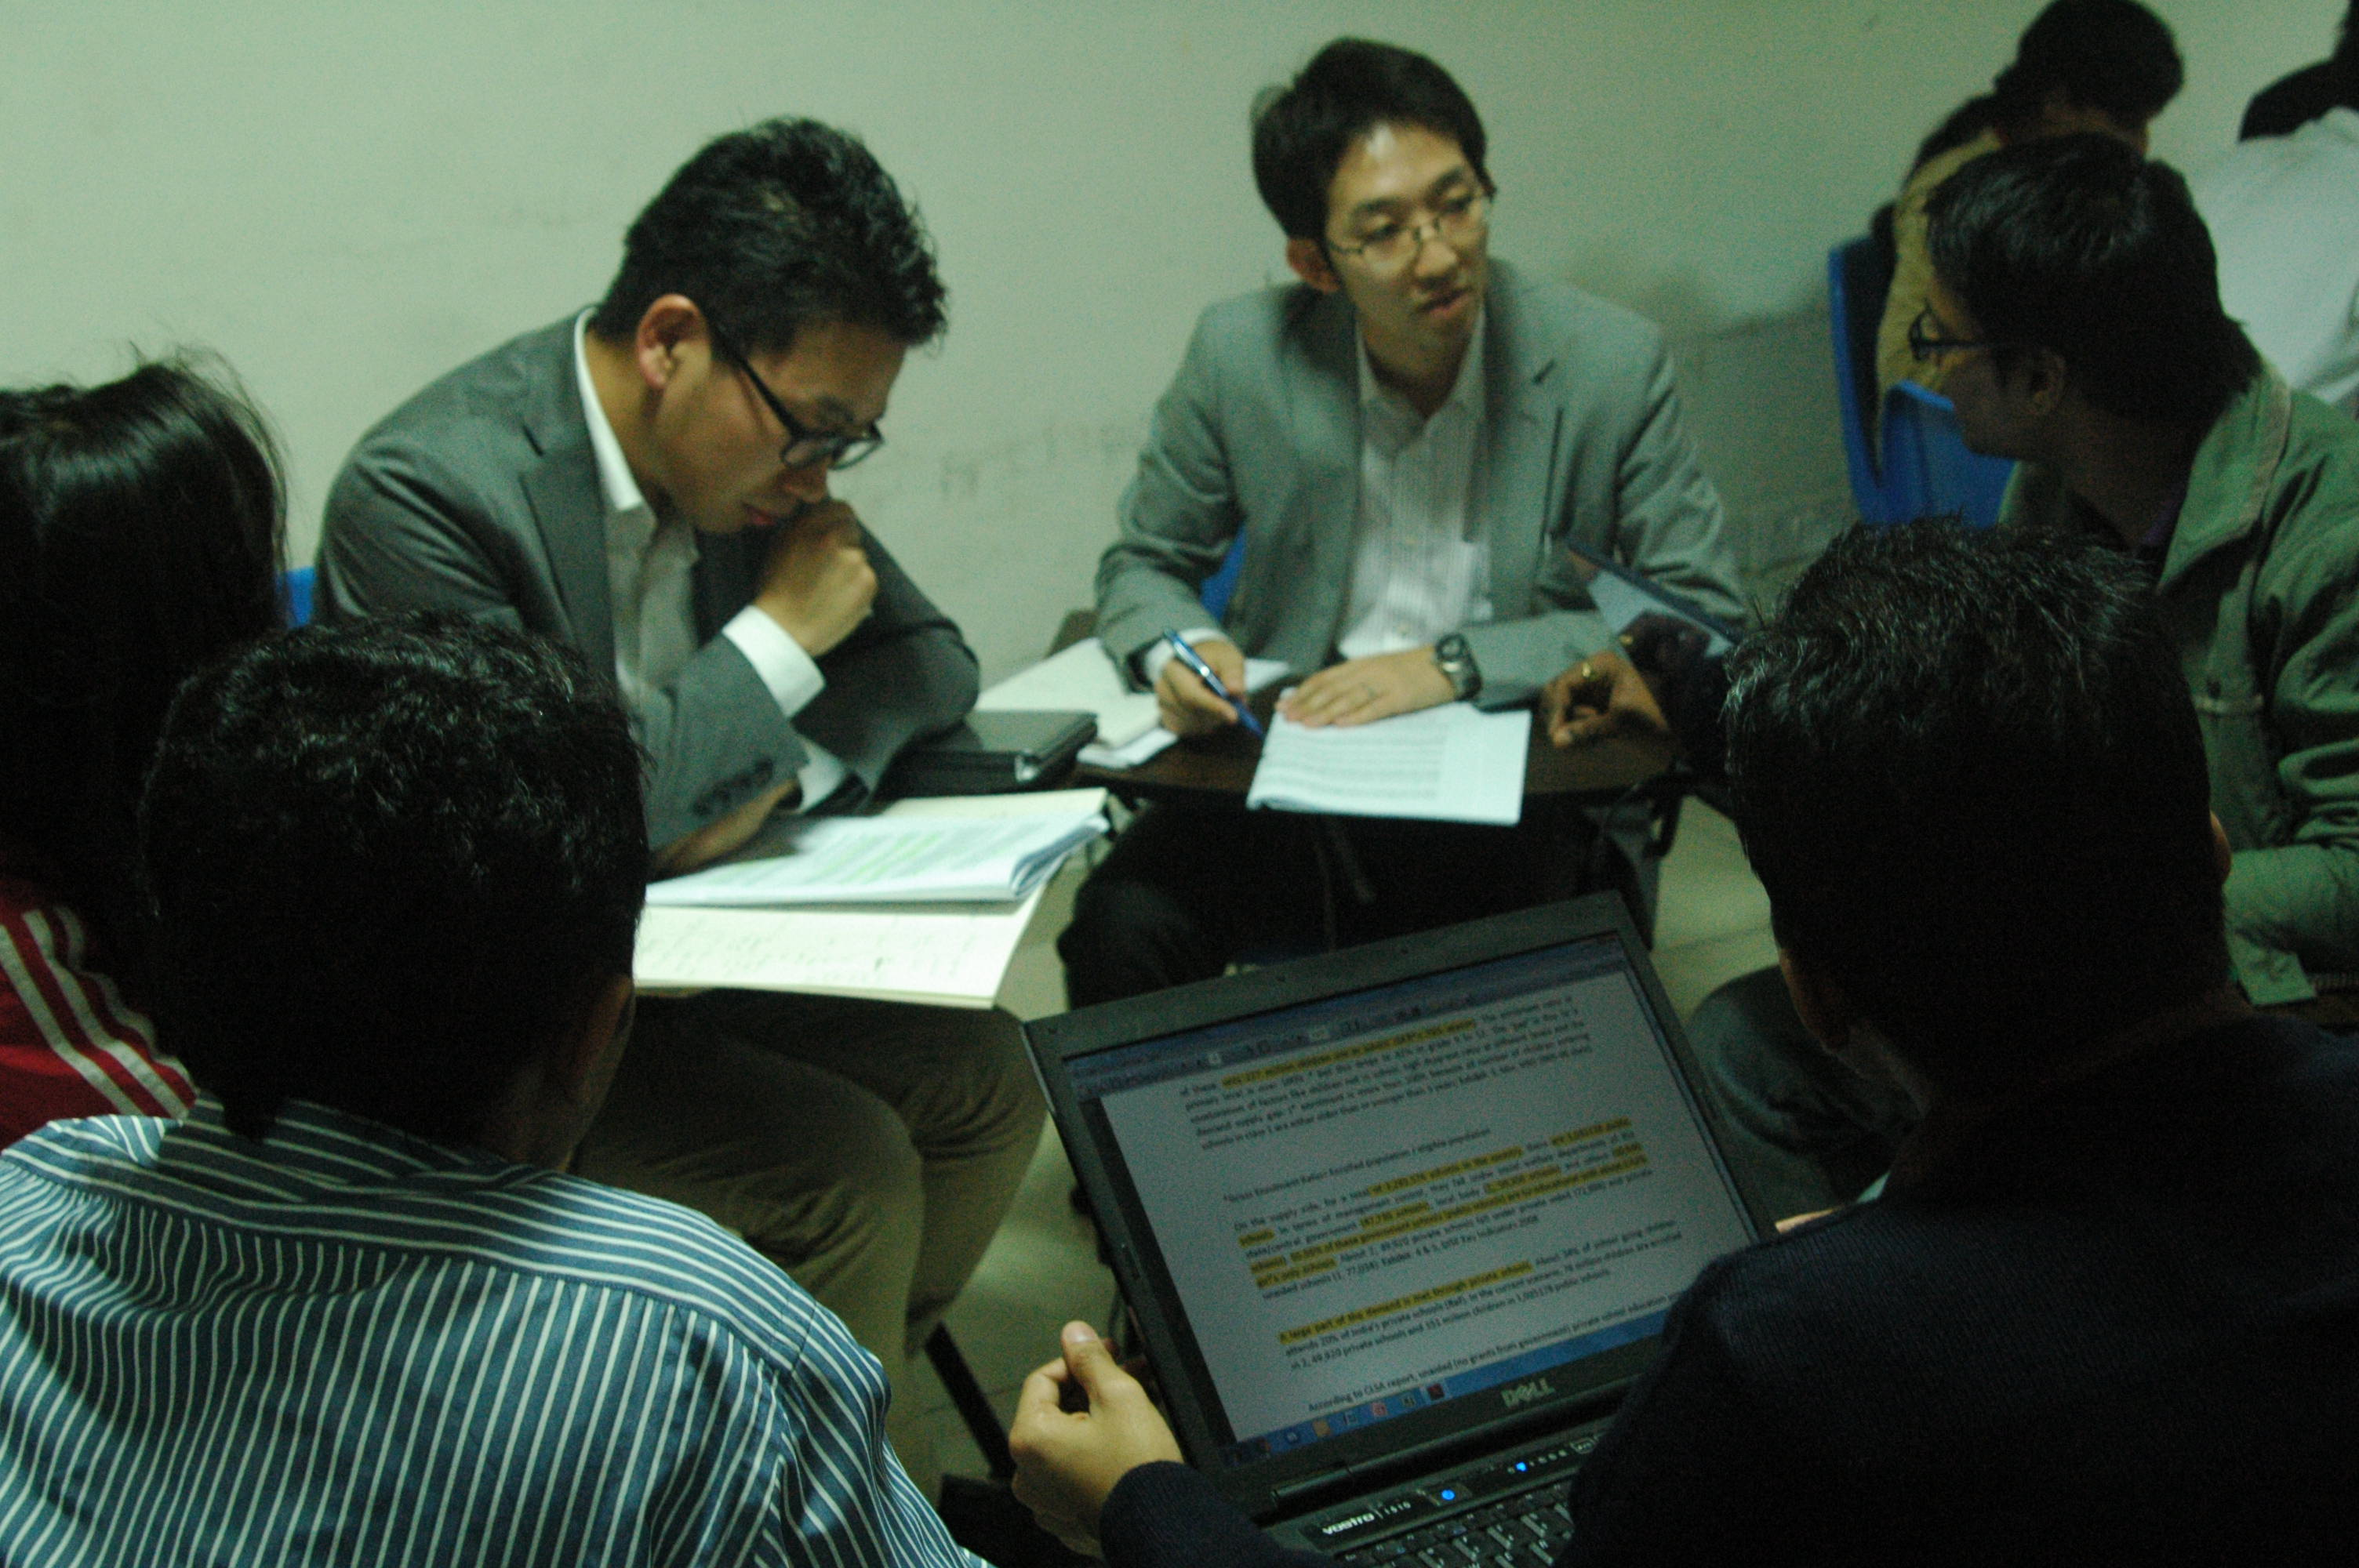 Hitachi executives with IWSB students in a classroom discussion